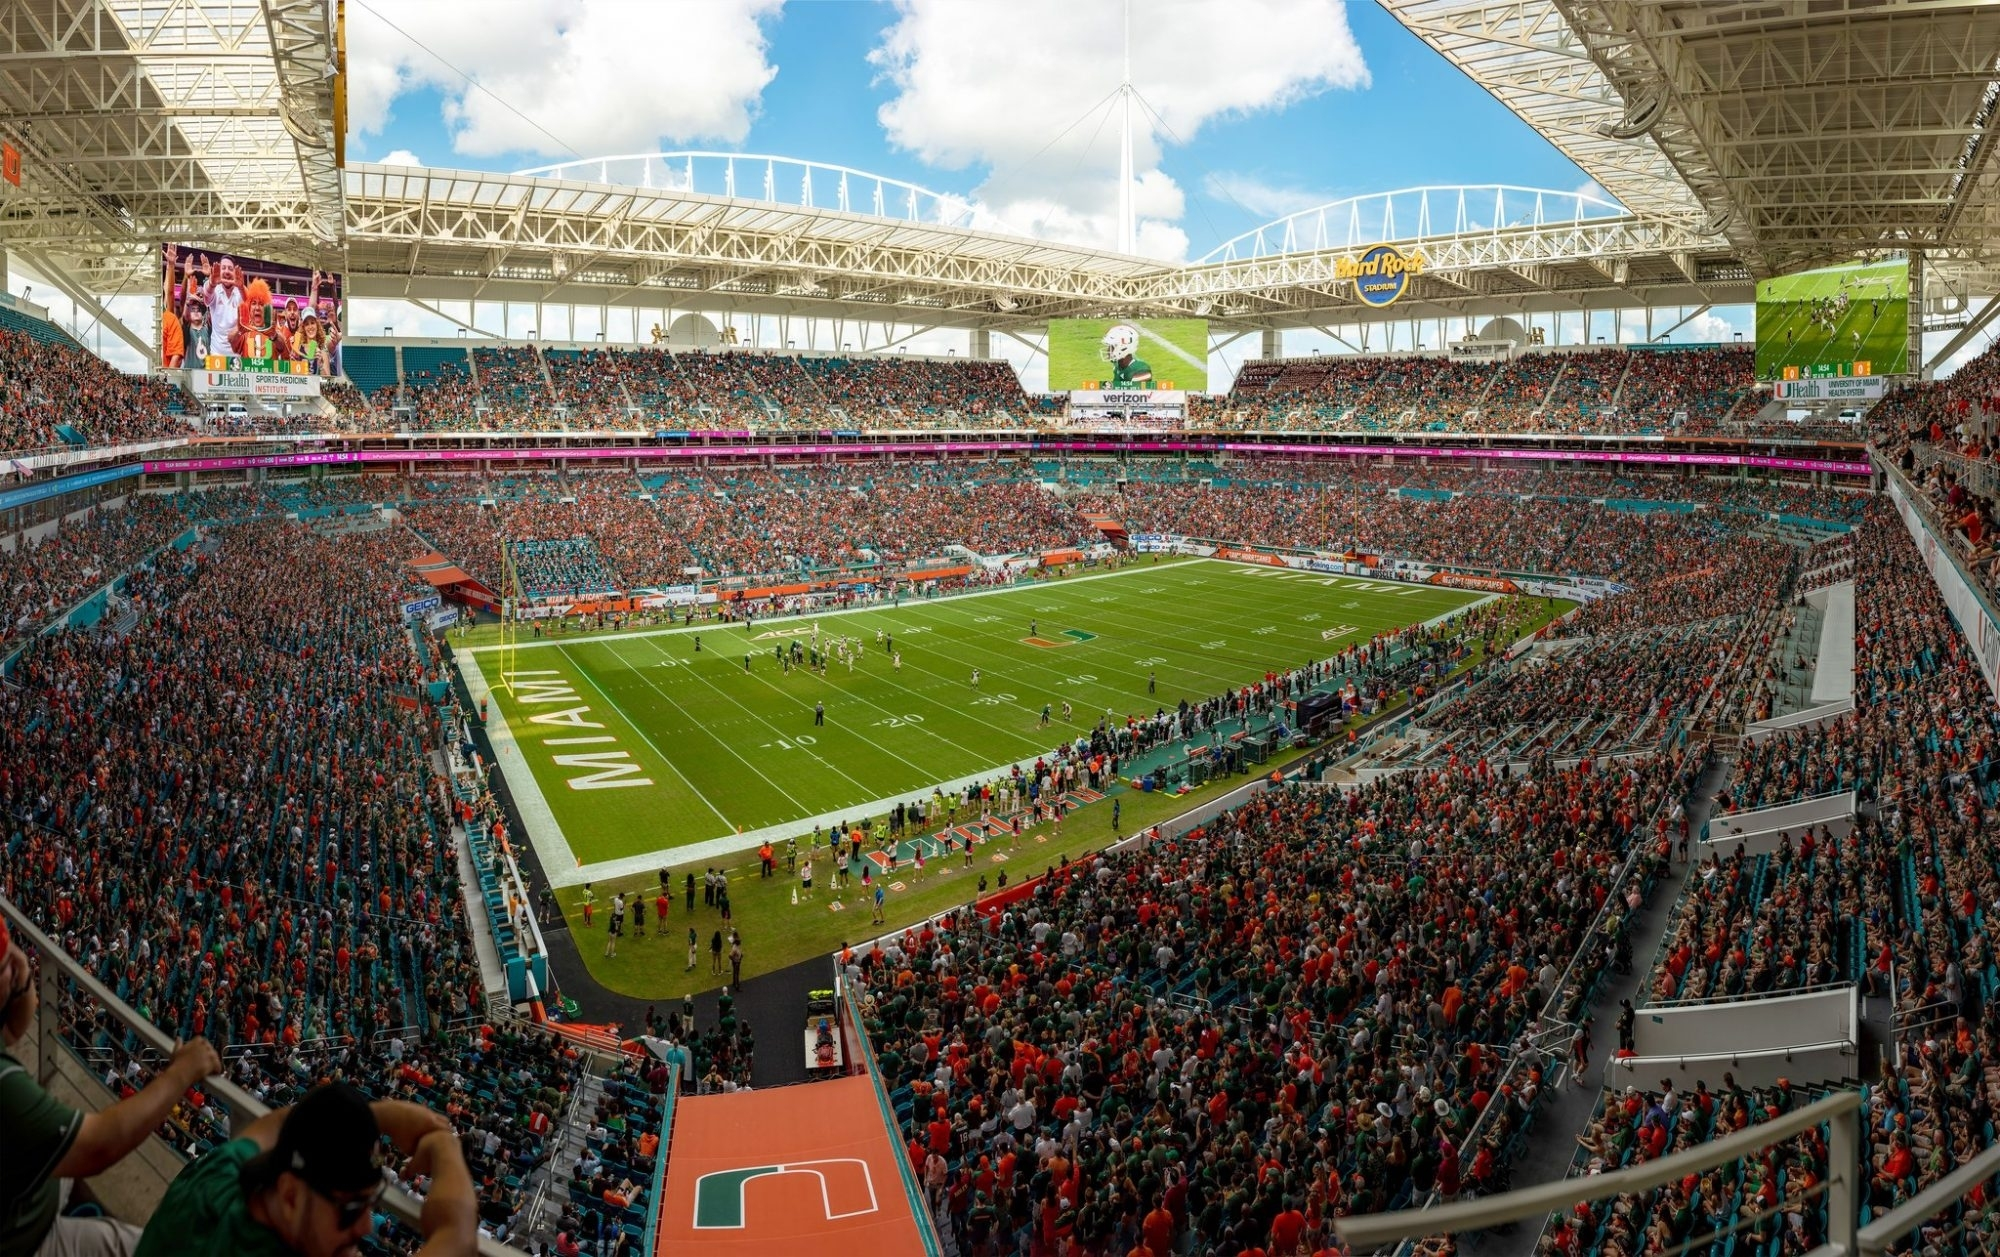 Super Bowl 2020 Packages From Australia: Tickets, Hotels pertaining to Miami Super Bowl 2020 Hotels